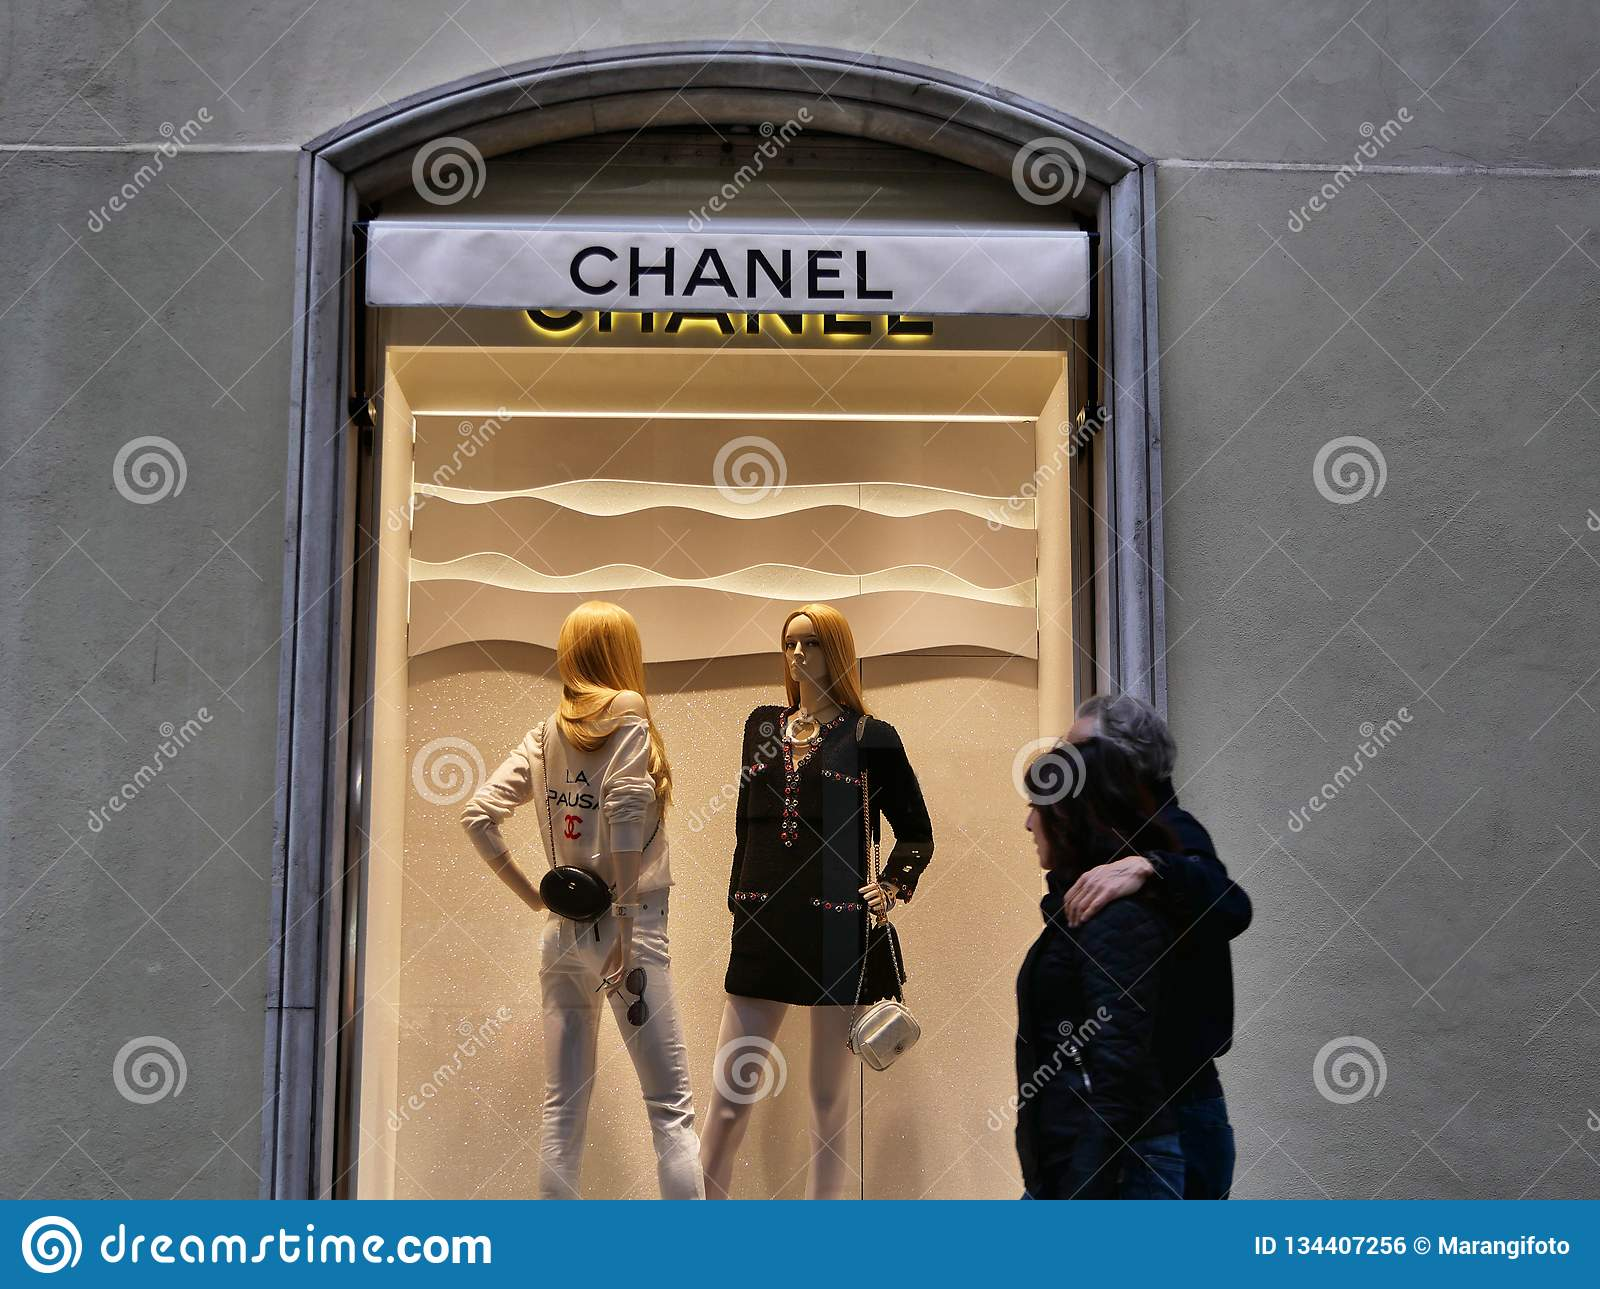 Chanel fashion shop window from outside